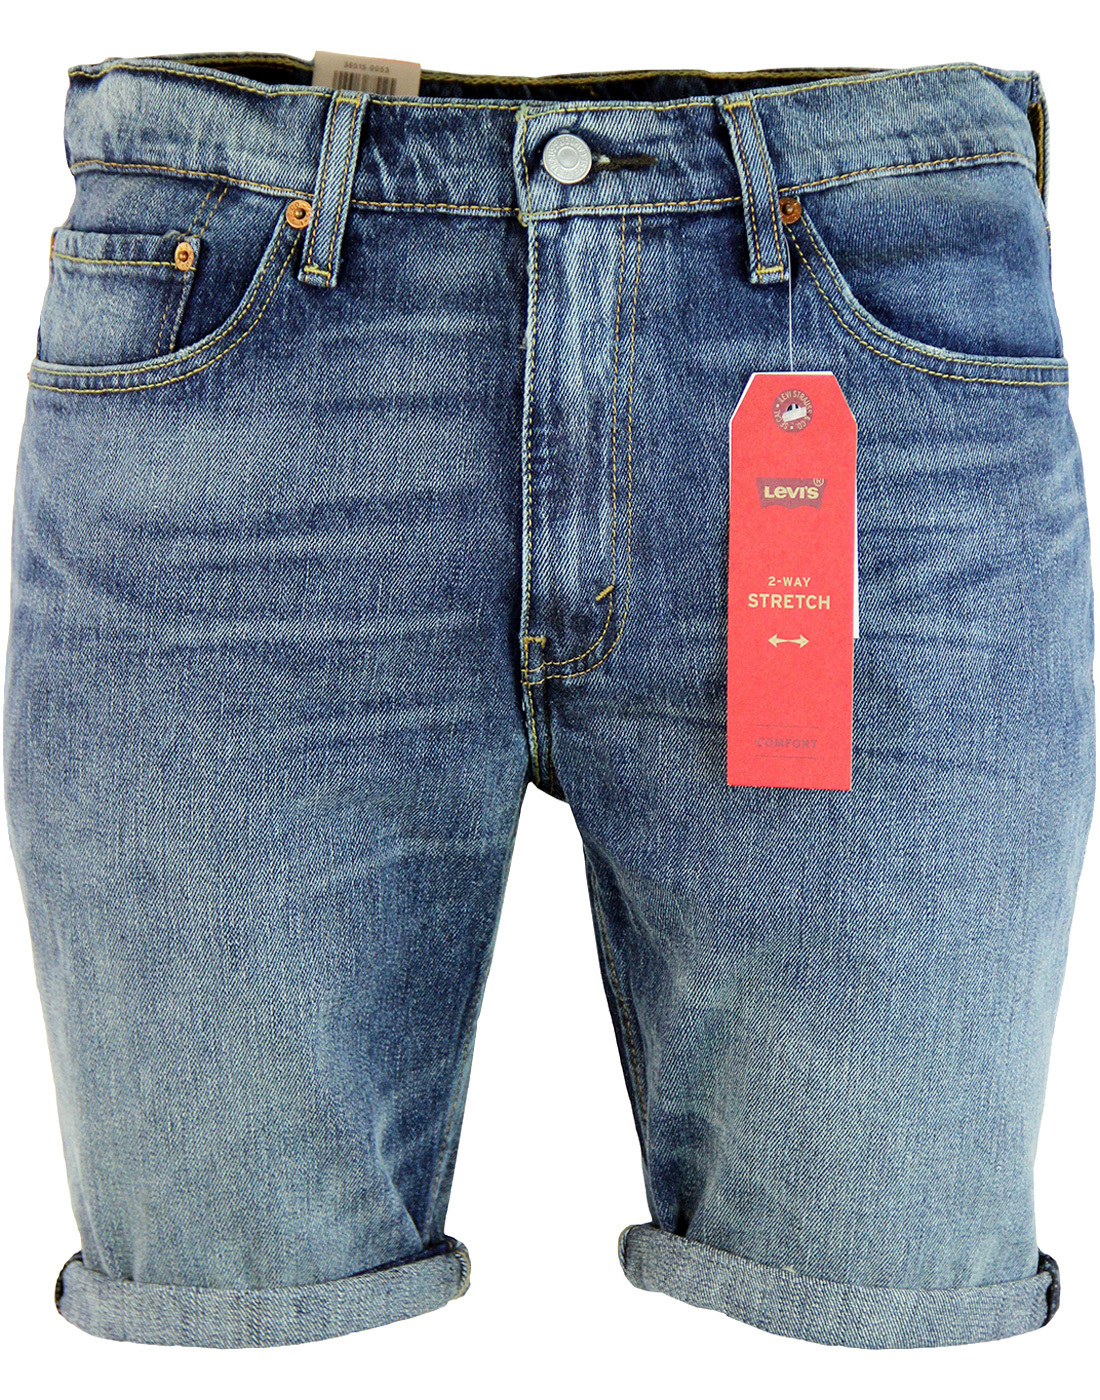 LEVI'S® 511 Retro Slim Hemmed Denim Shorts HIFI